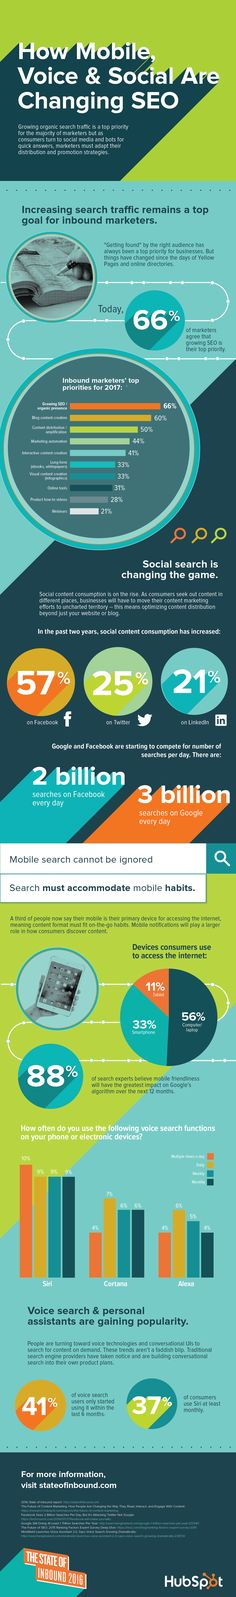 How Mobile, Voice & Social Are Changing SEO #Infographic #Marketing